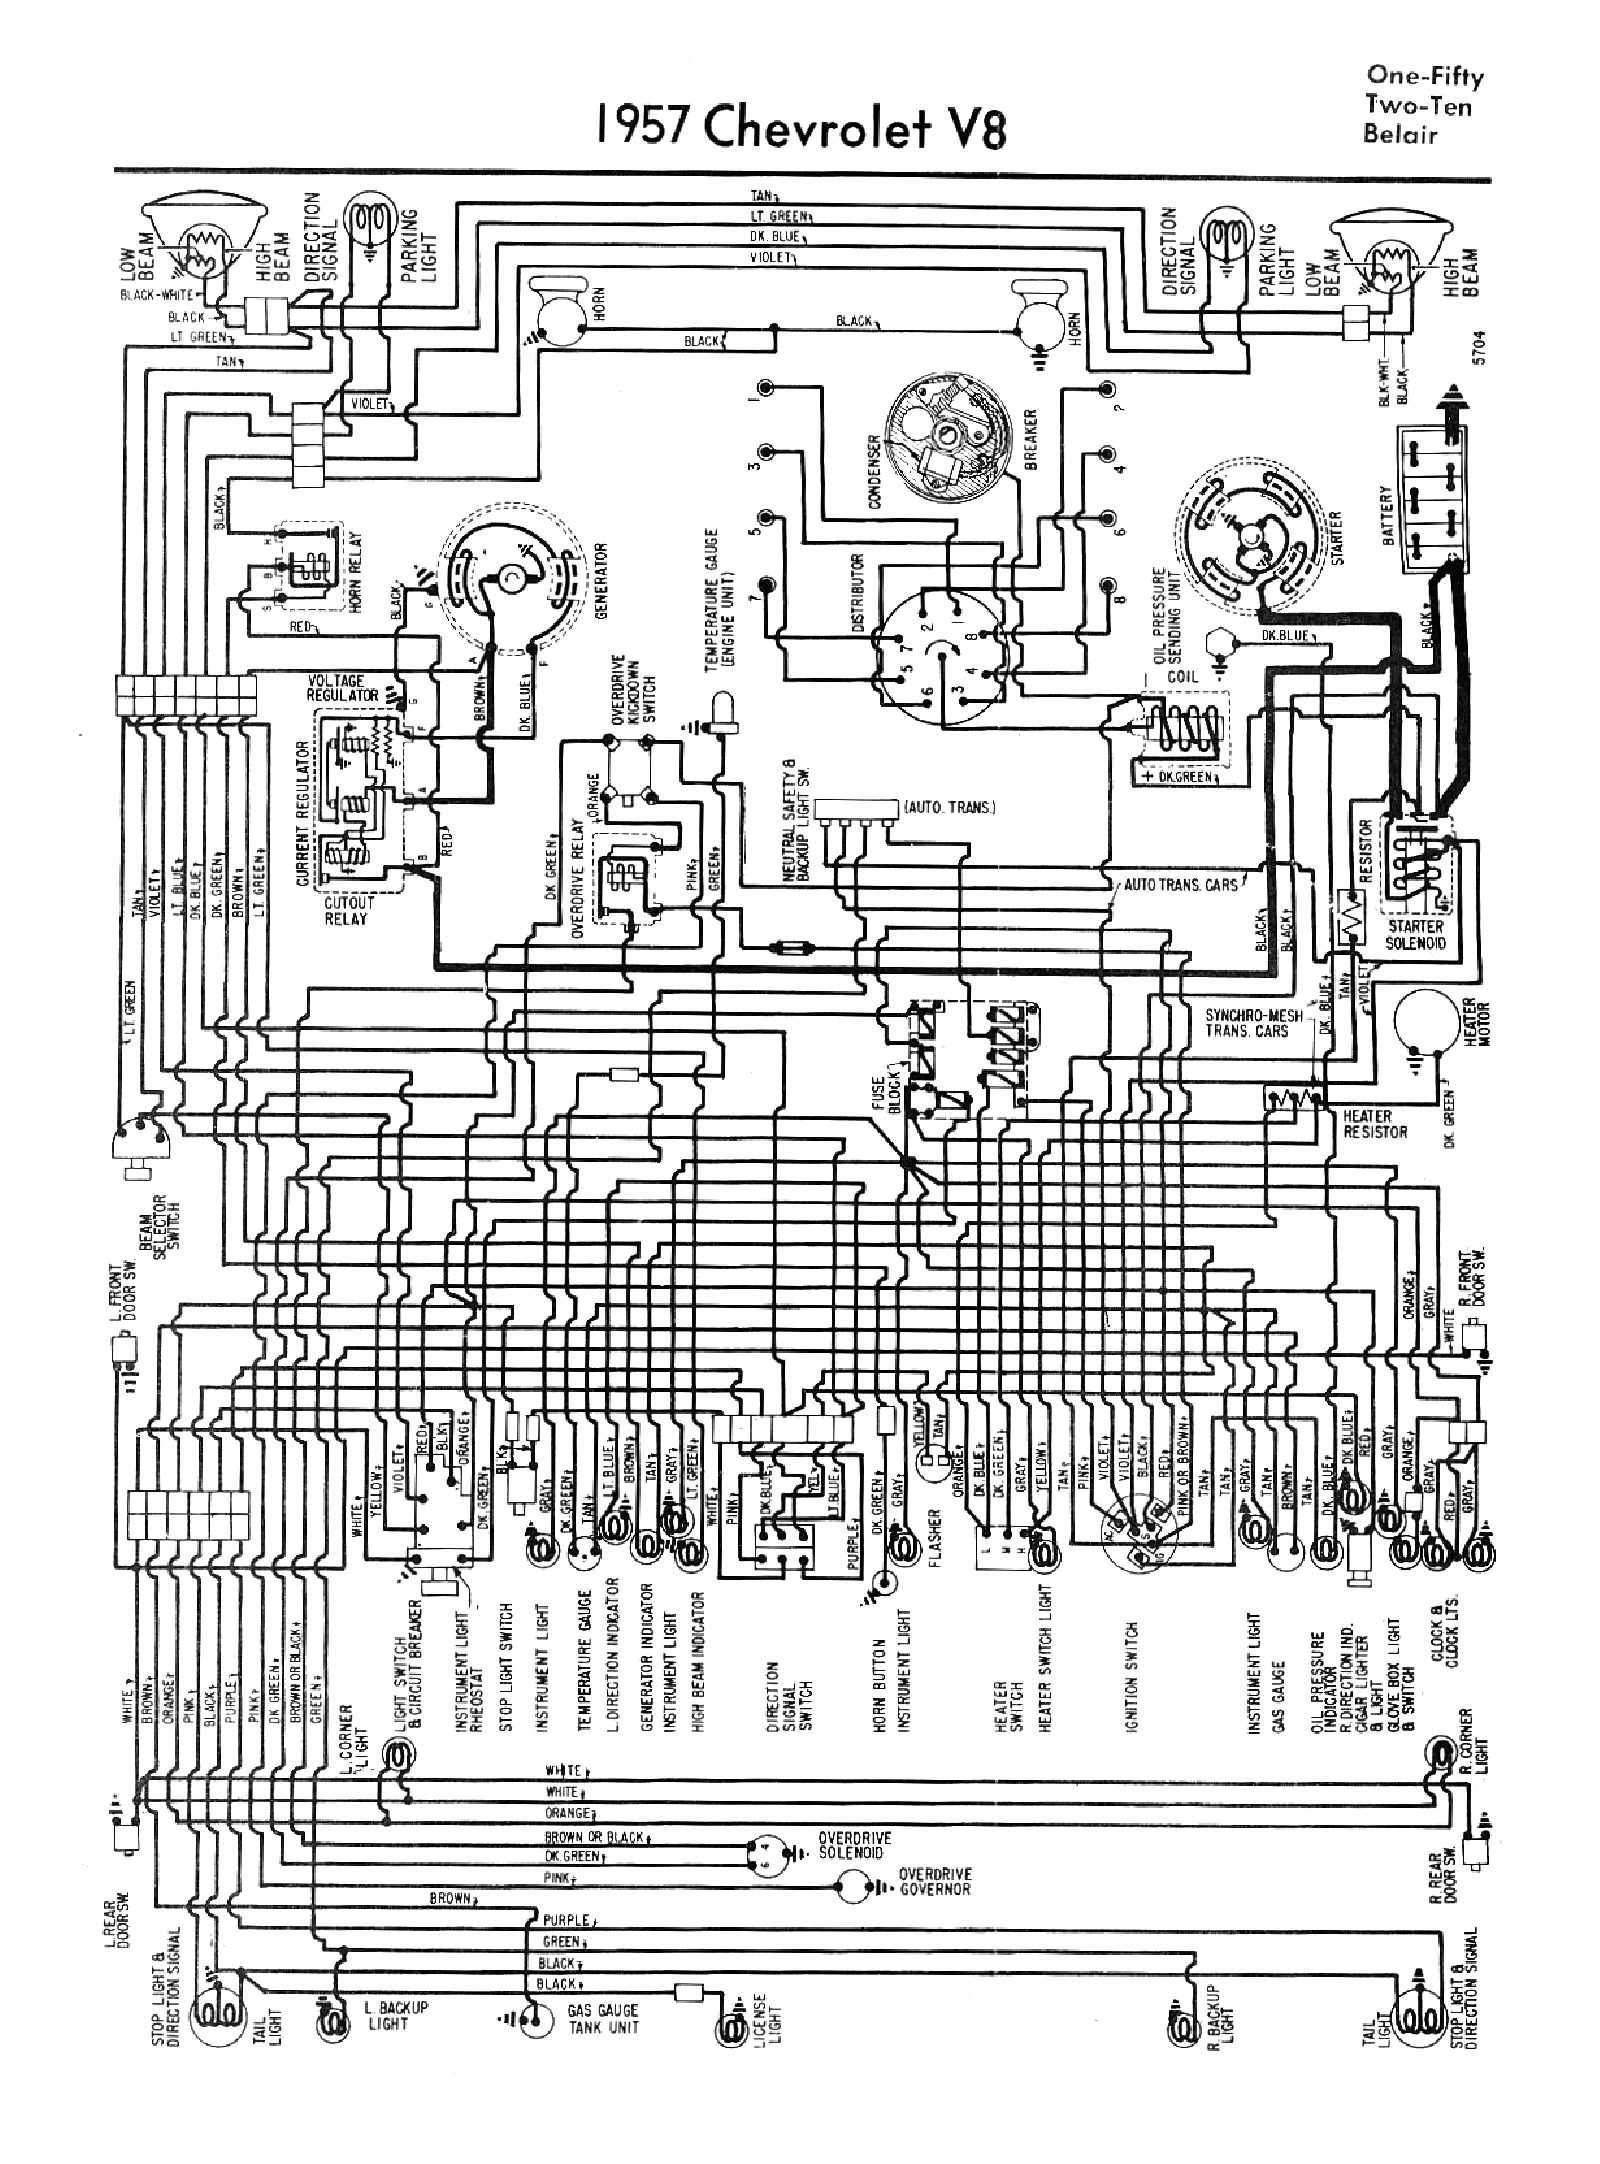 Chevrolet Truck Wiper Wiring Diagram Library 1977 Chevy C10 Diagrams Light Wire Free Engine Image Silverado